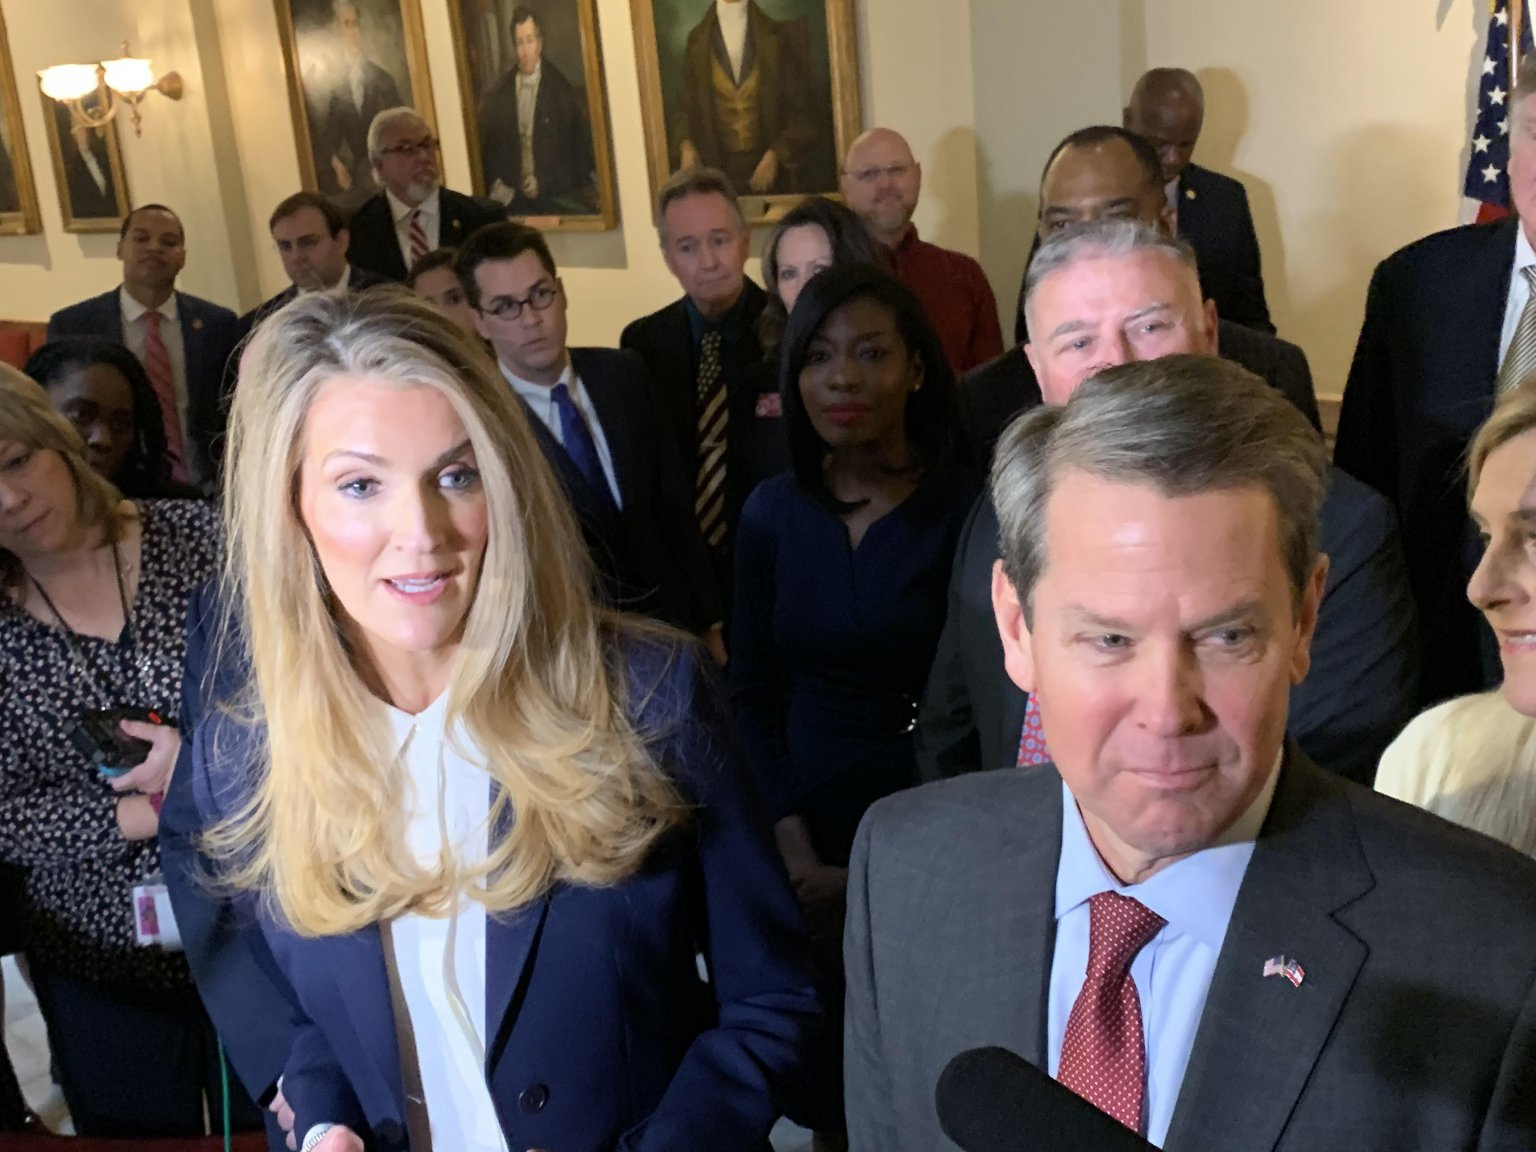 Conservative cred, Trump fealty touted by Loeffler in struggle to hold her seat and the Senate